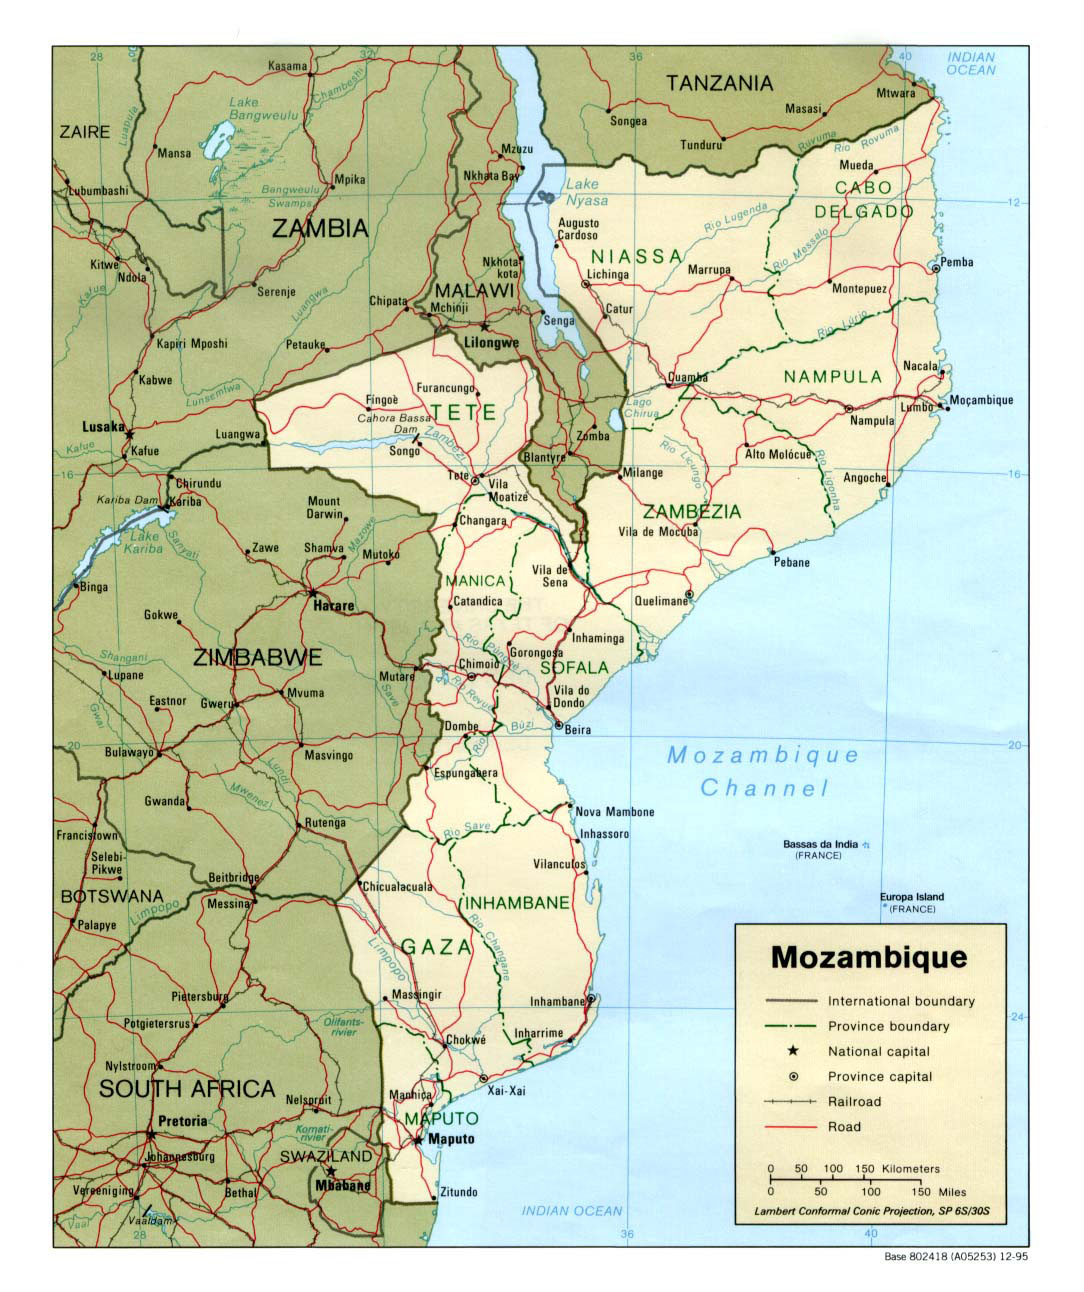 Detailed political and administrative map of Mozambique with cities